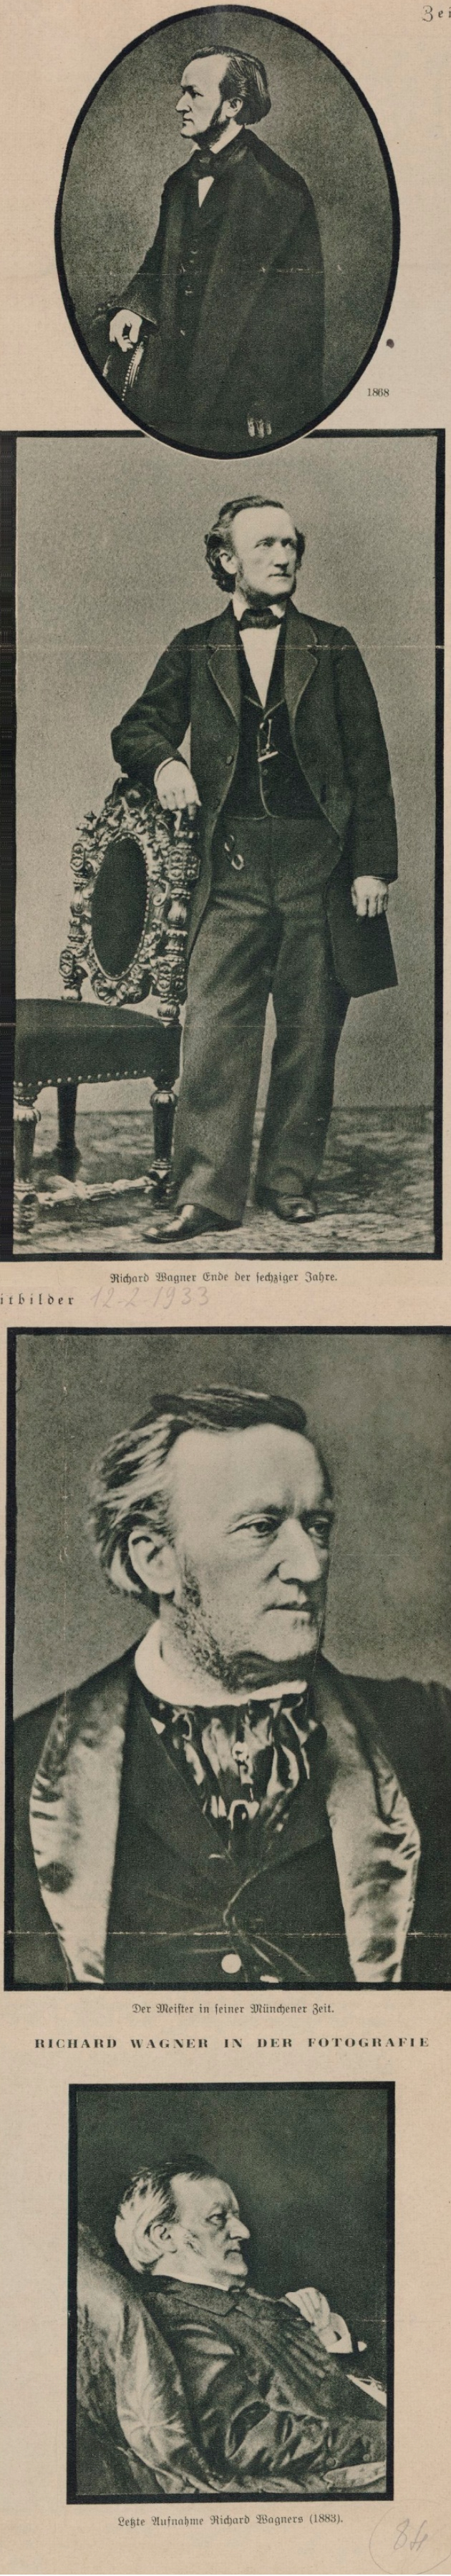 Diverses photographies de Richard Wagner